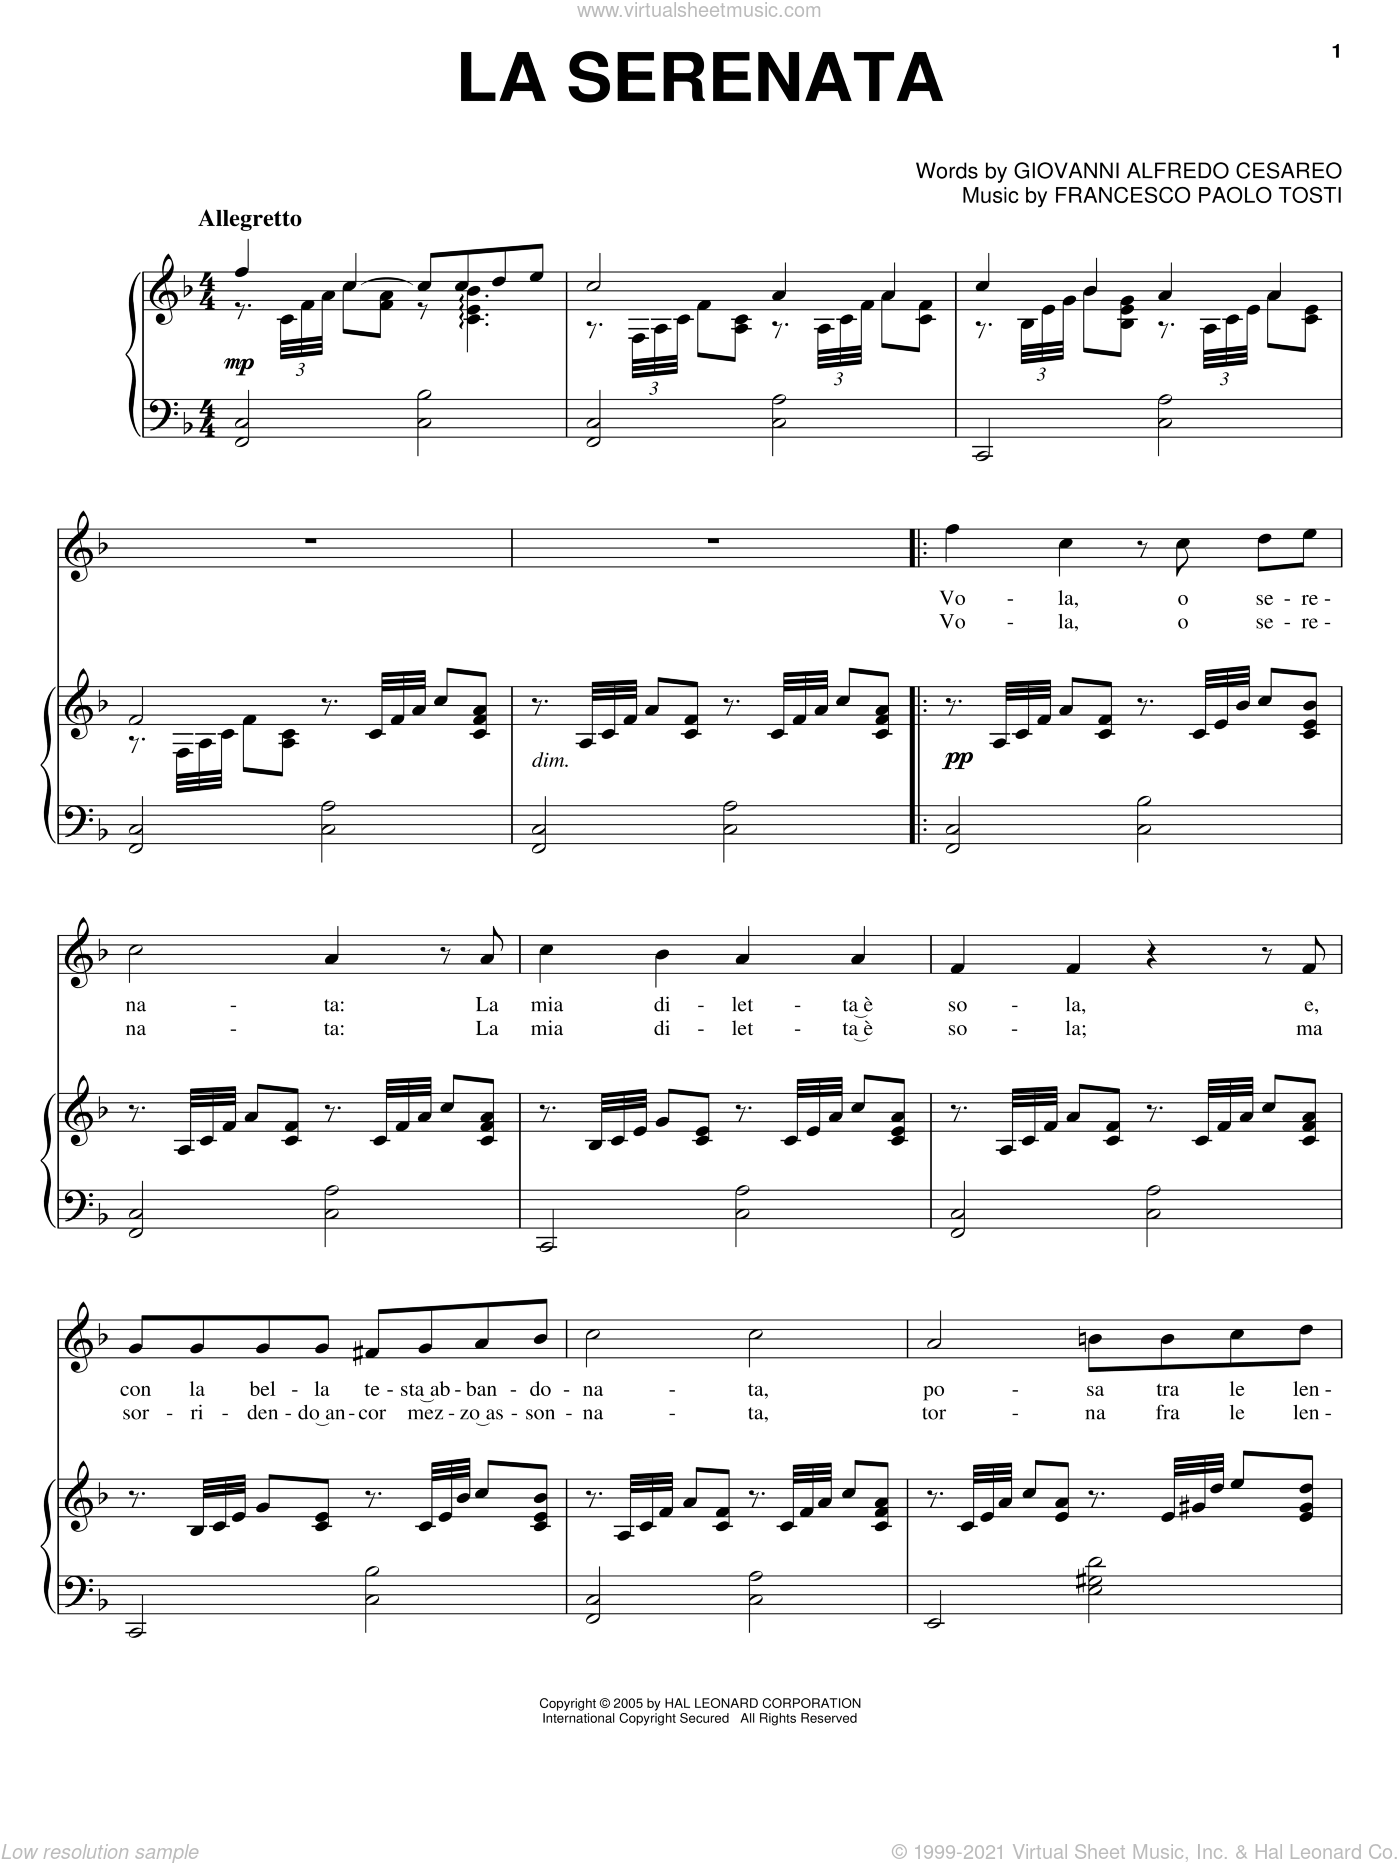 La Serenata sheet music for voice, piano or guitar by Giovanni Alfredo Cesareo